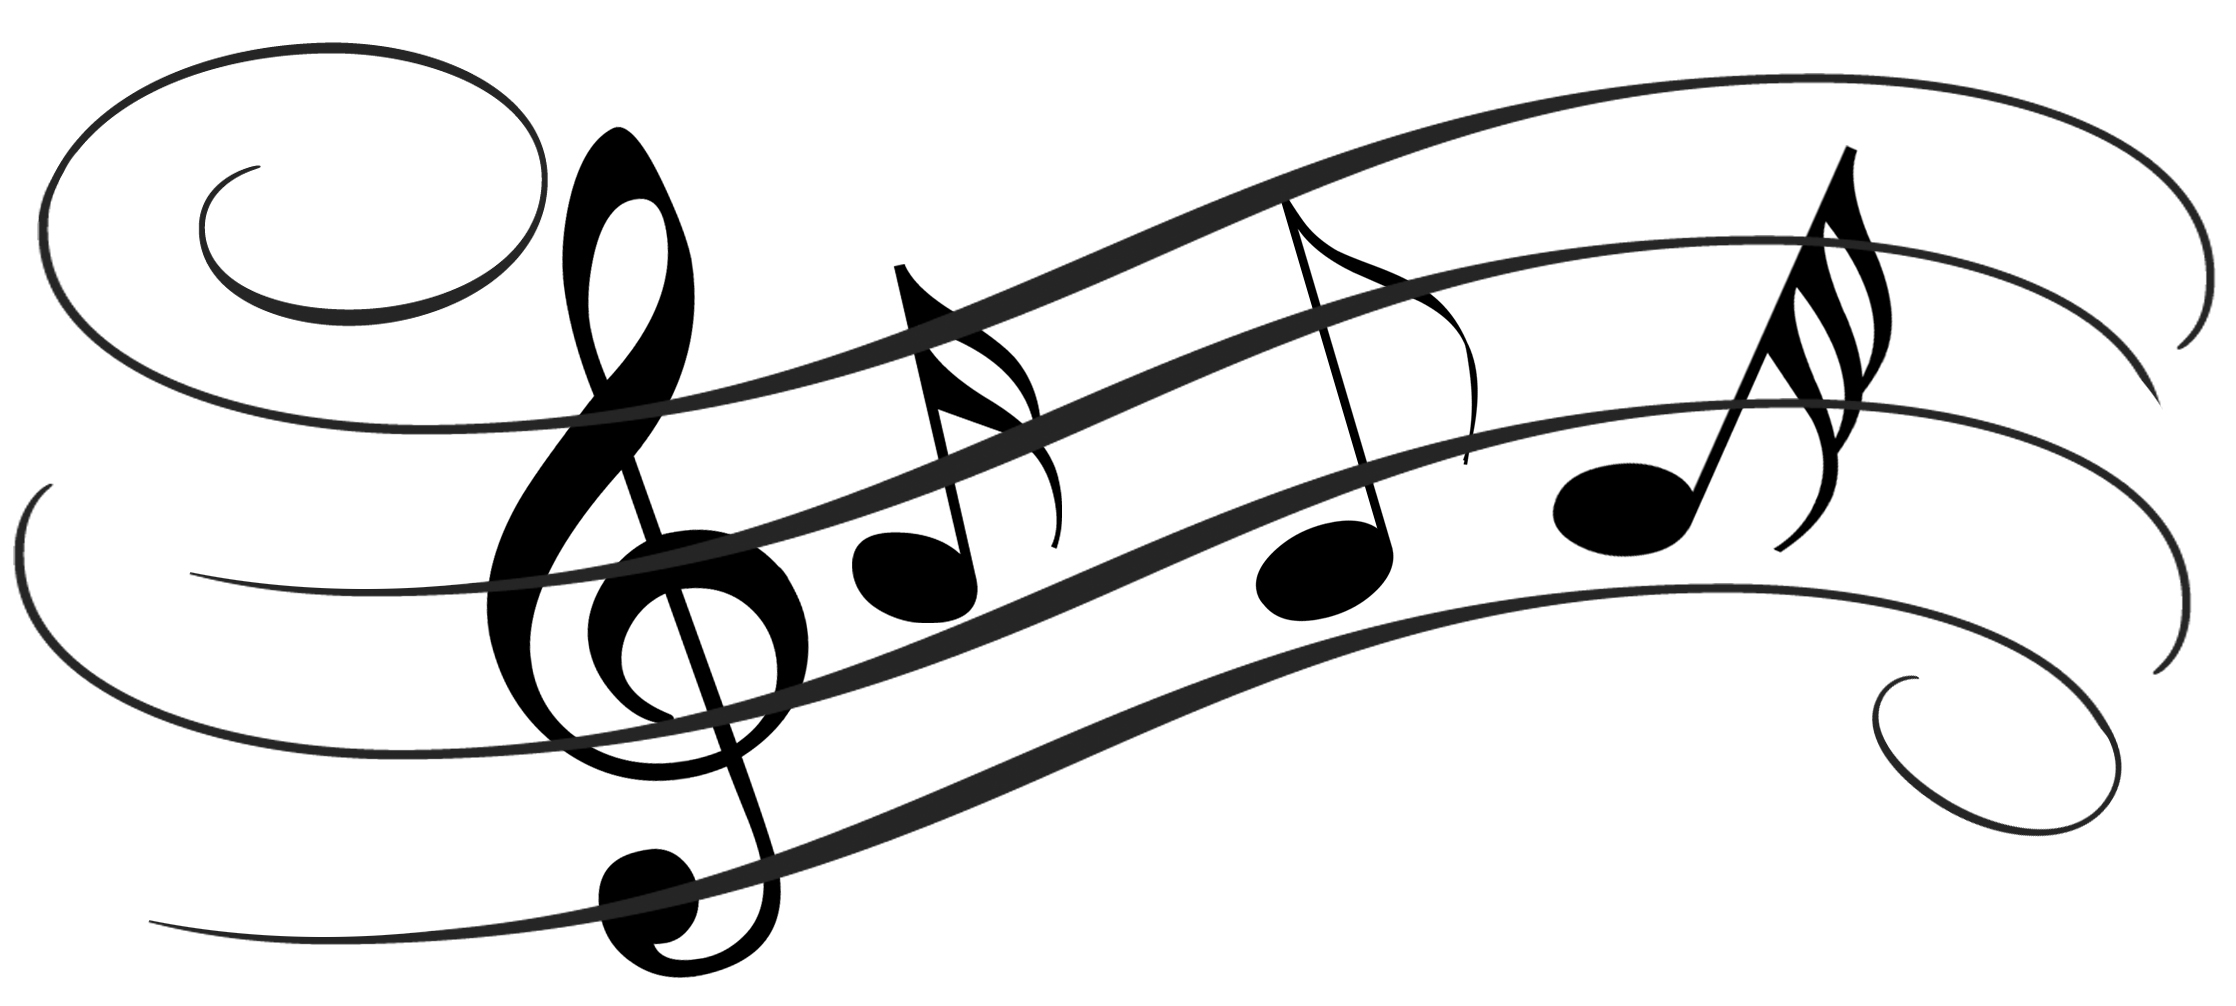 Music Notes Heart Wallpaper Clipart Panda Free Clipart Images